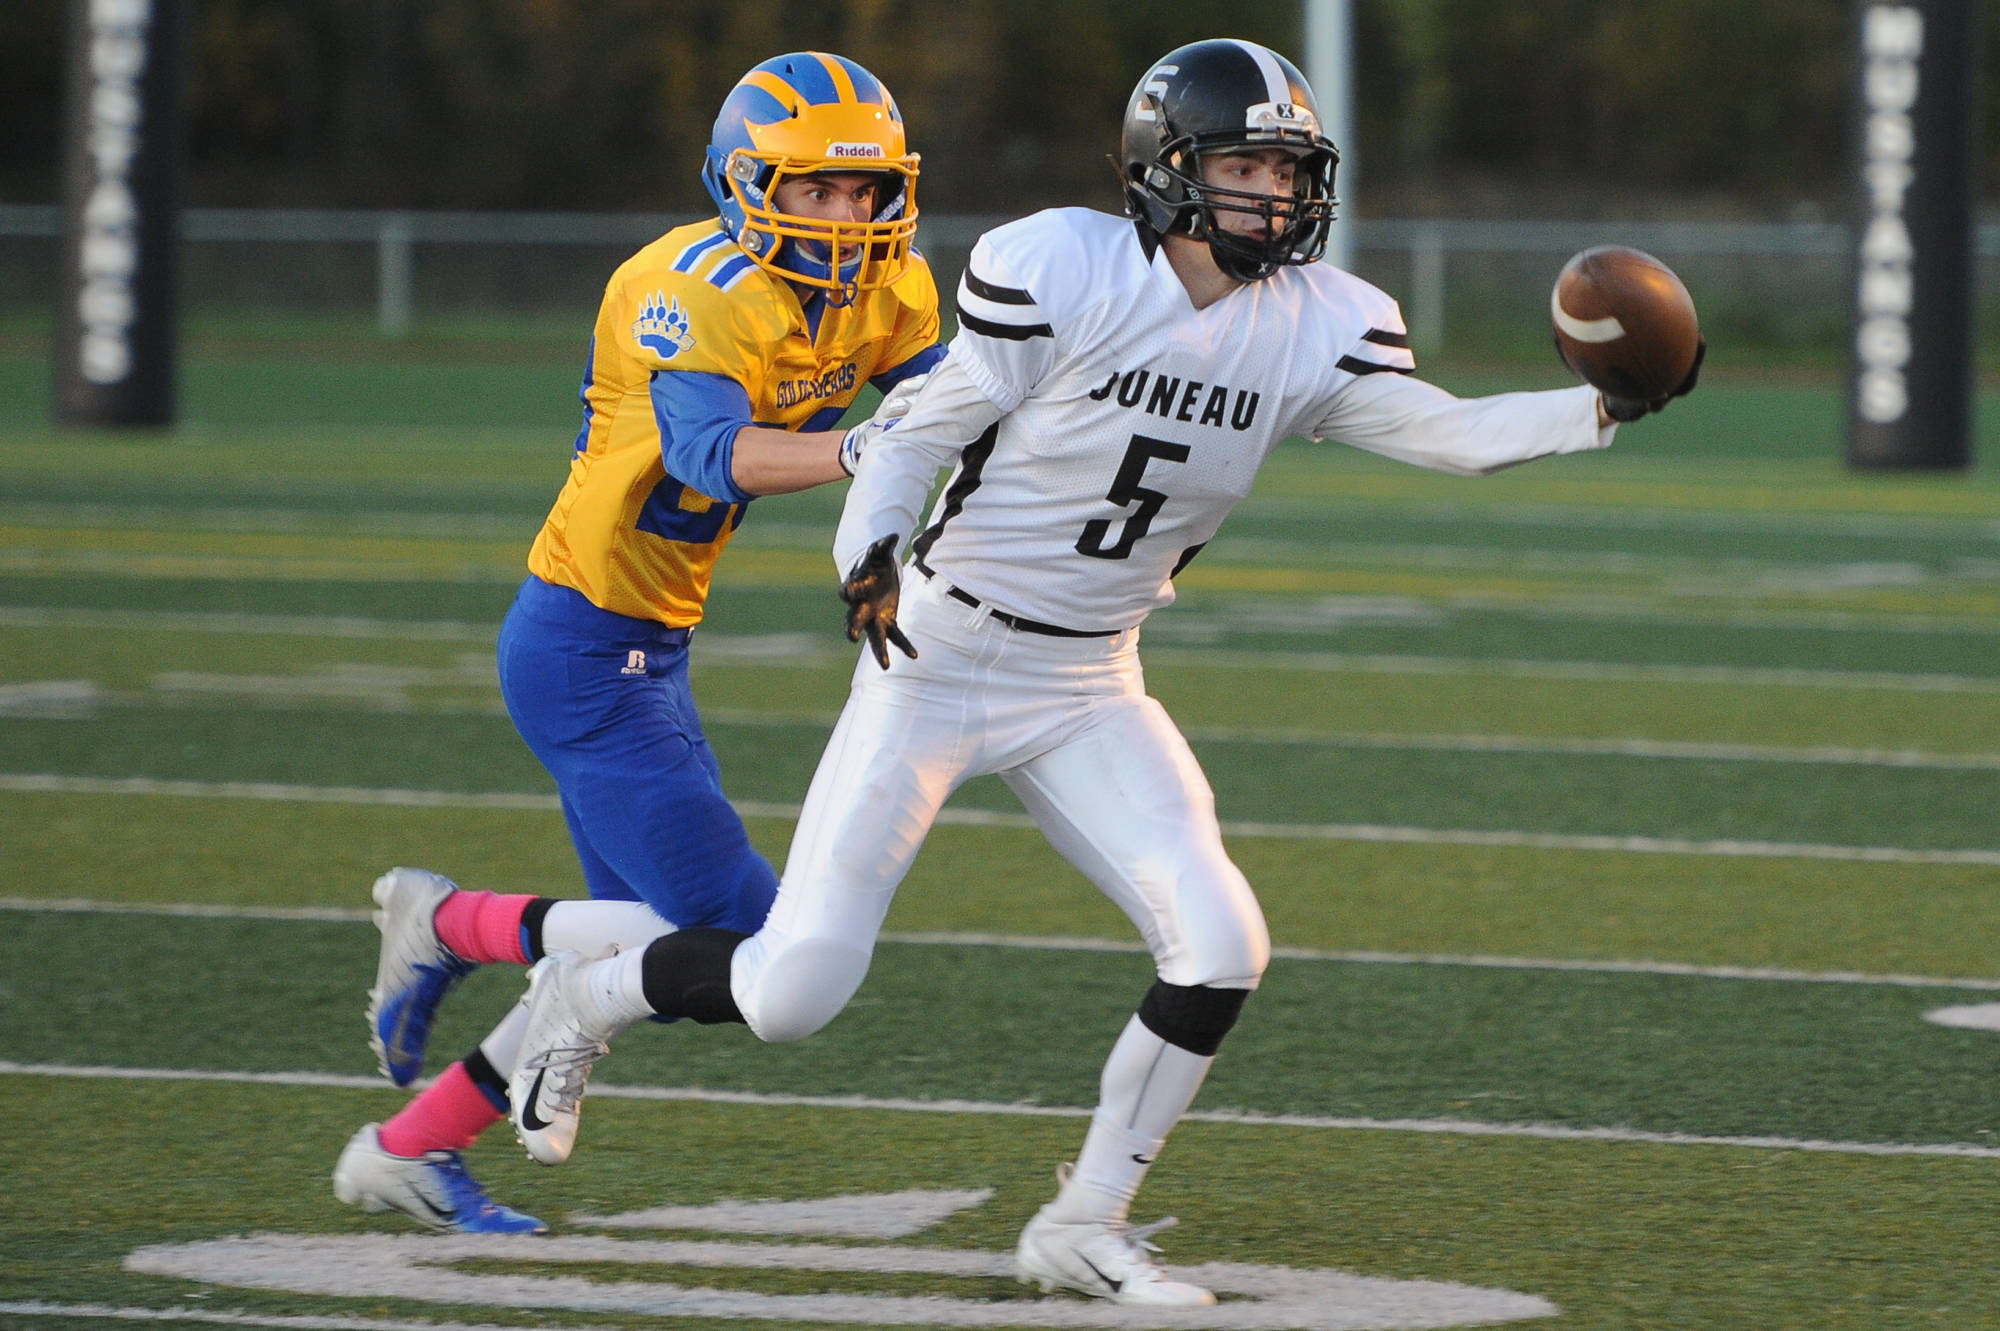 Juneau's Hansel Hinckle reaches for a pass as Bartlett defender Josh Siania closes in at Chugiak High School in Anchorage on Saturday, Sept. 29. Bartlett won 65-12. (Michael Dinneen | For the Juneau Empire)